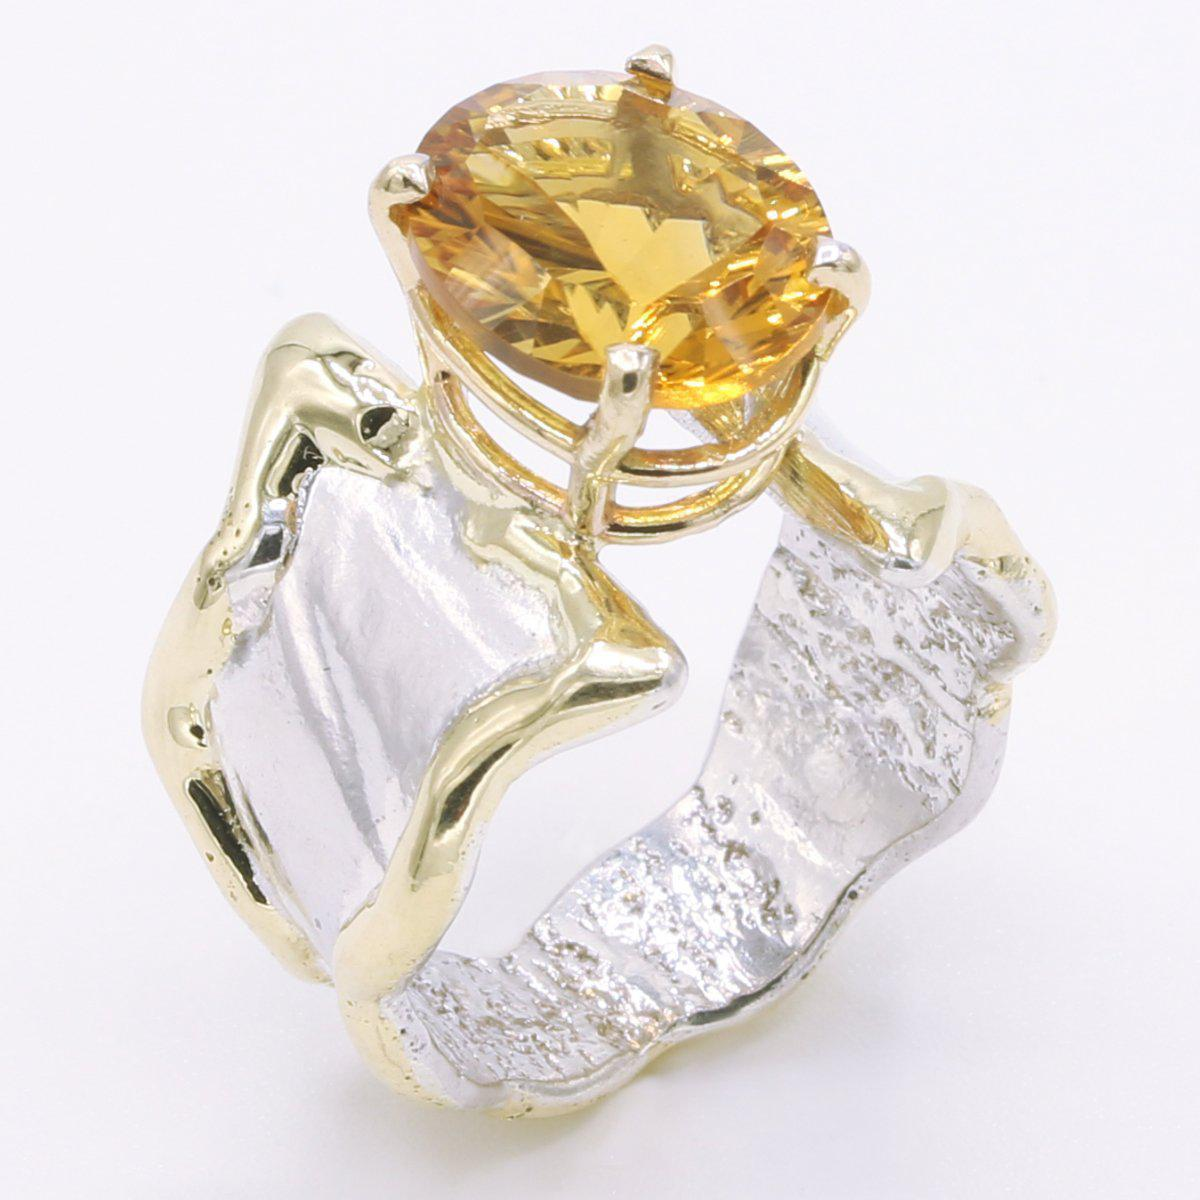 14K Gold & Crystalline Silver Citrine Ring - 34539-Fusion Designs-Renee Taylor Gallery